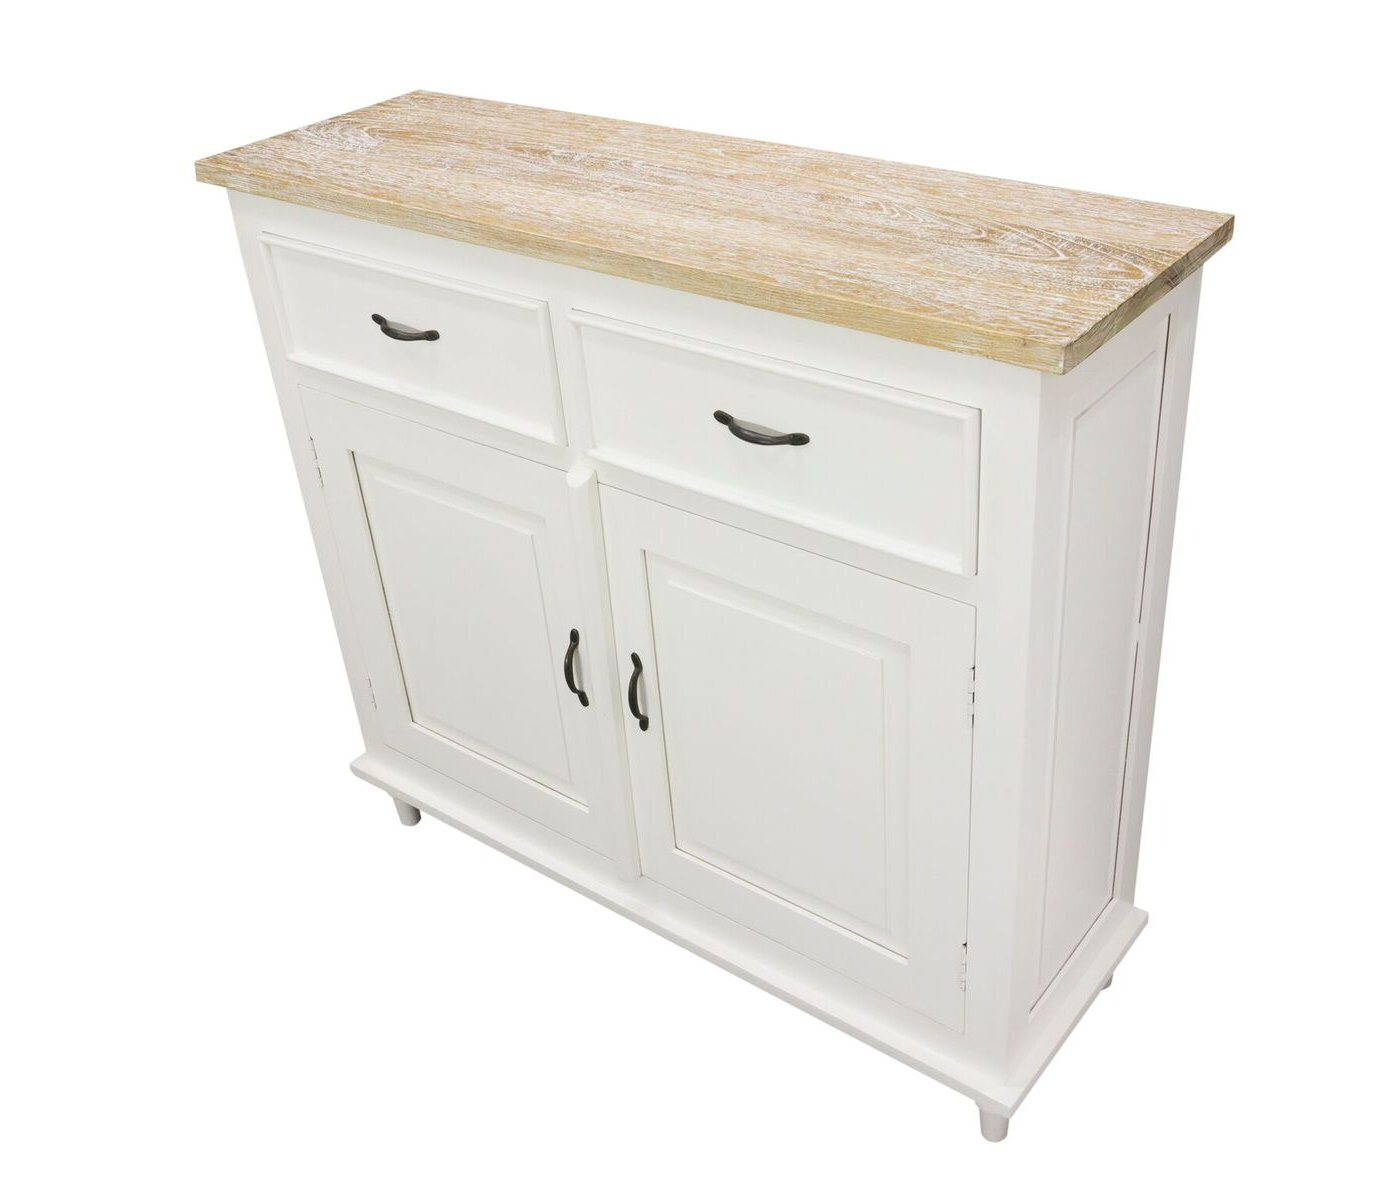 3 Drawer/2 Door White Wash Sideboards With Well Liked Whitewashed Sideboard 2 Drawer 2 Door (Gallery 17 of 20)